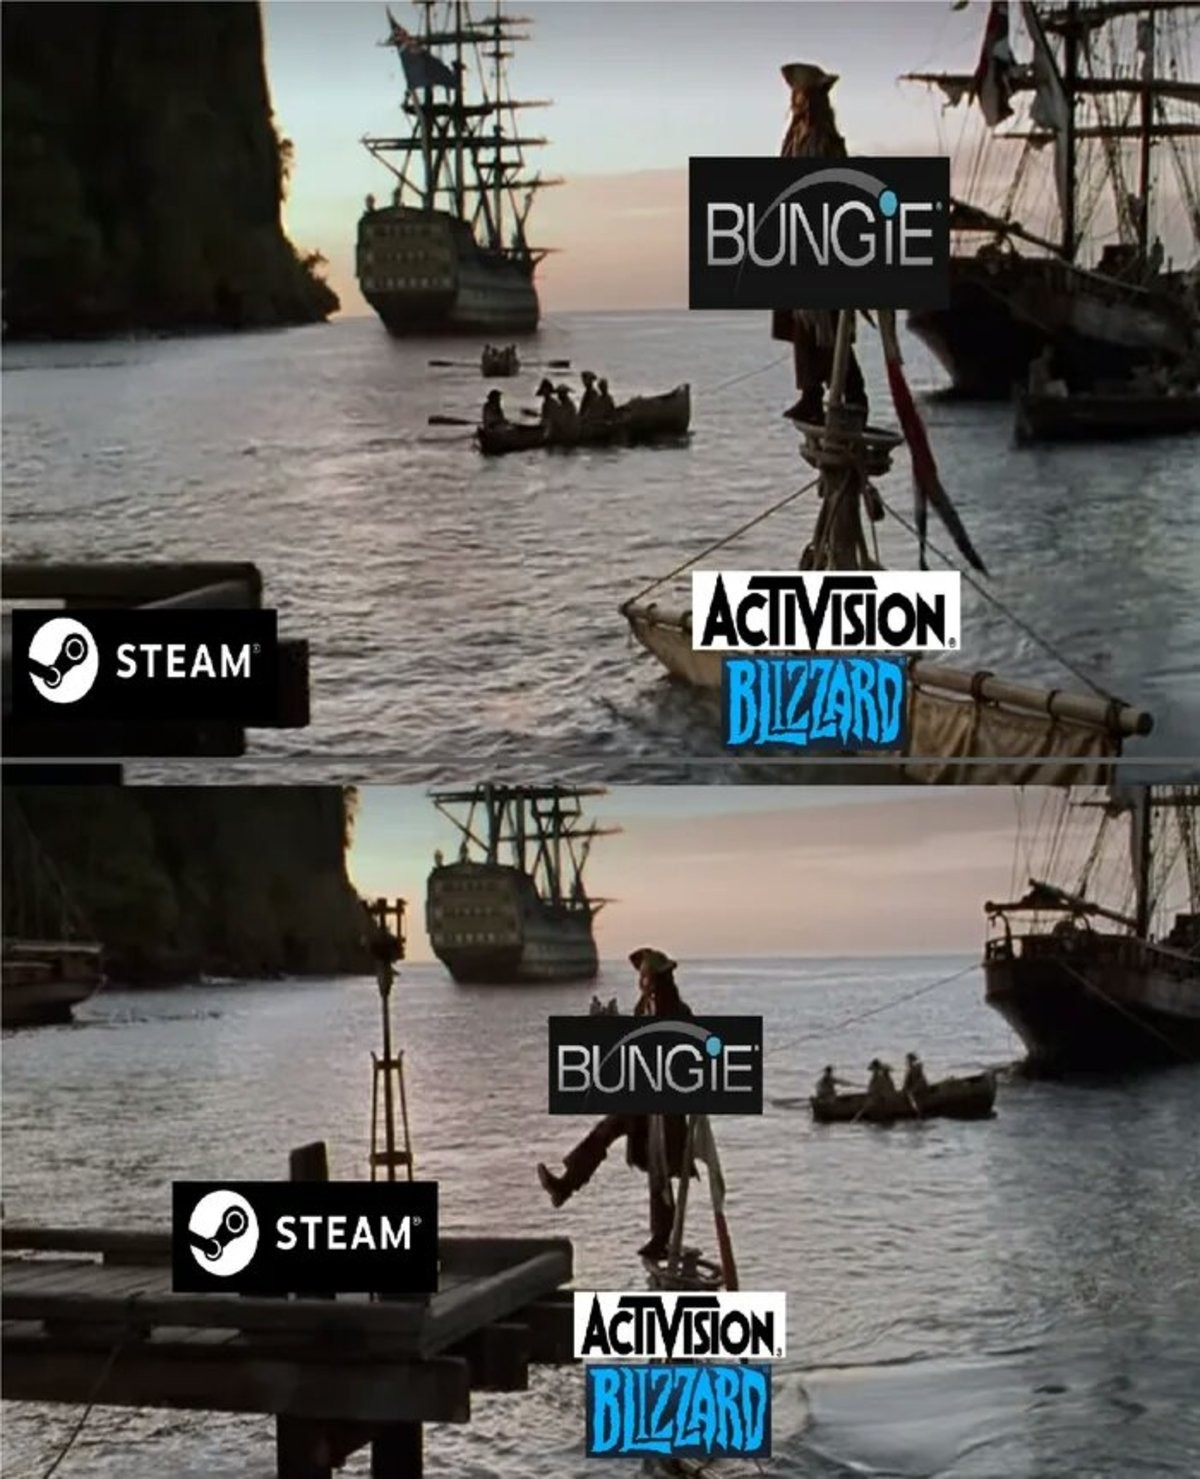 greedy coordinated Barracuda. .. Did you all forgot where bungie got the money to jump ship? www.theverge dot com/platform/amp/2018/6/3/17422410/bungie-netease-100-million-investment-china-dest